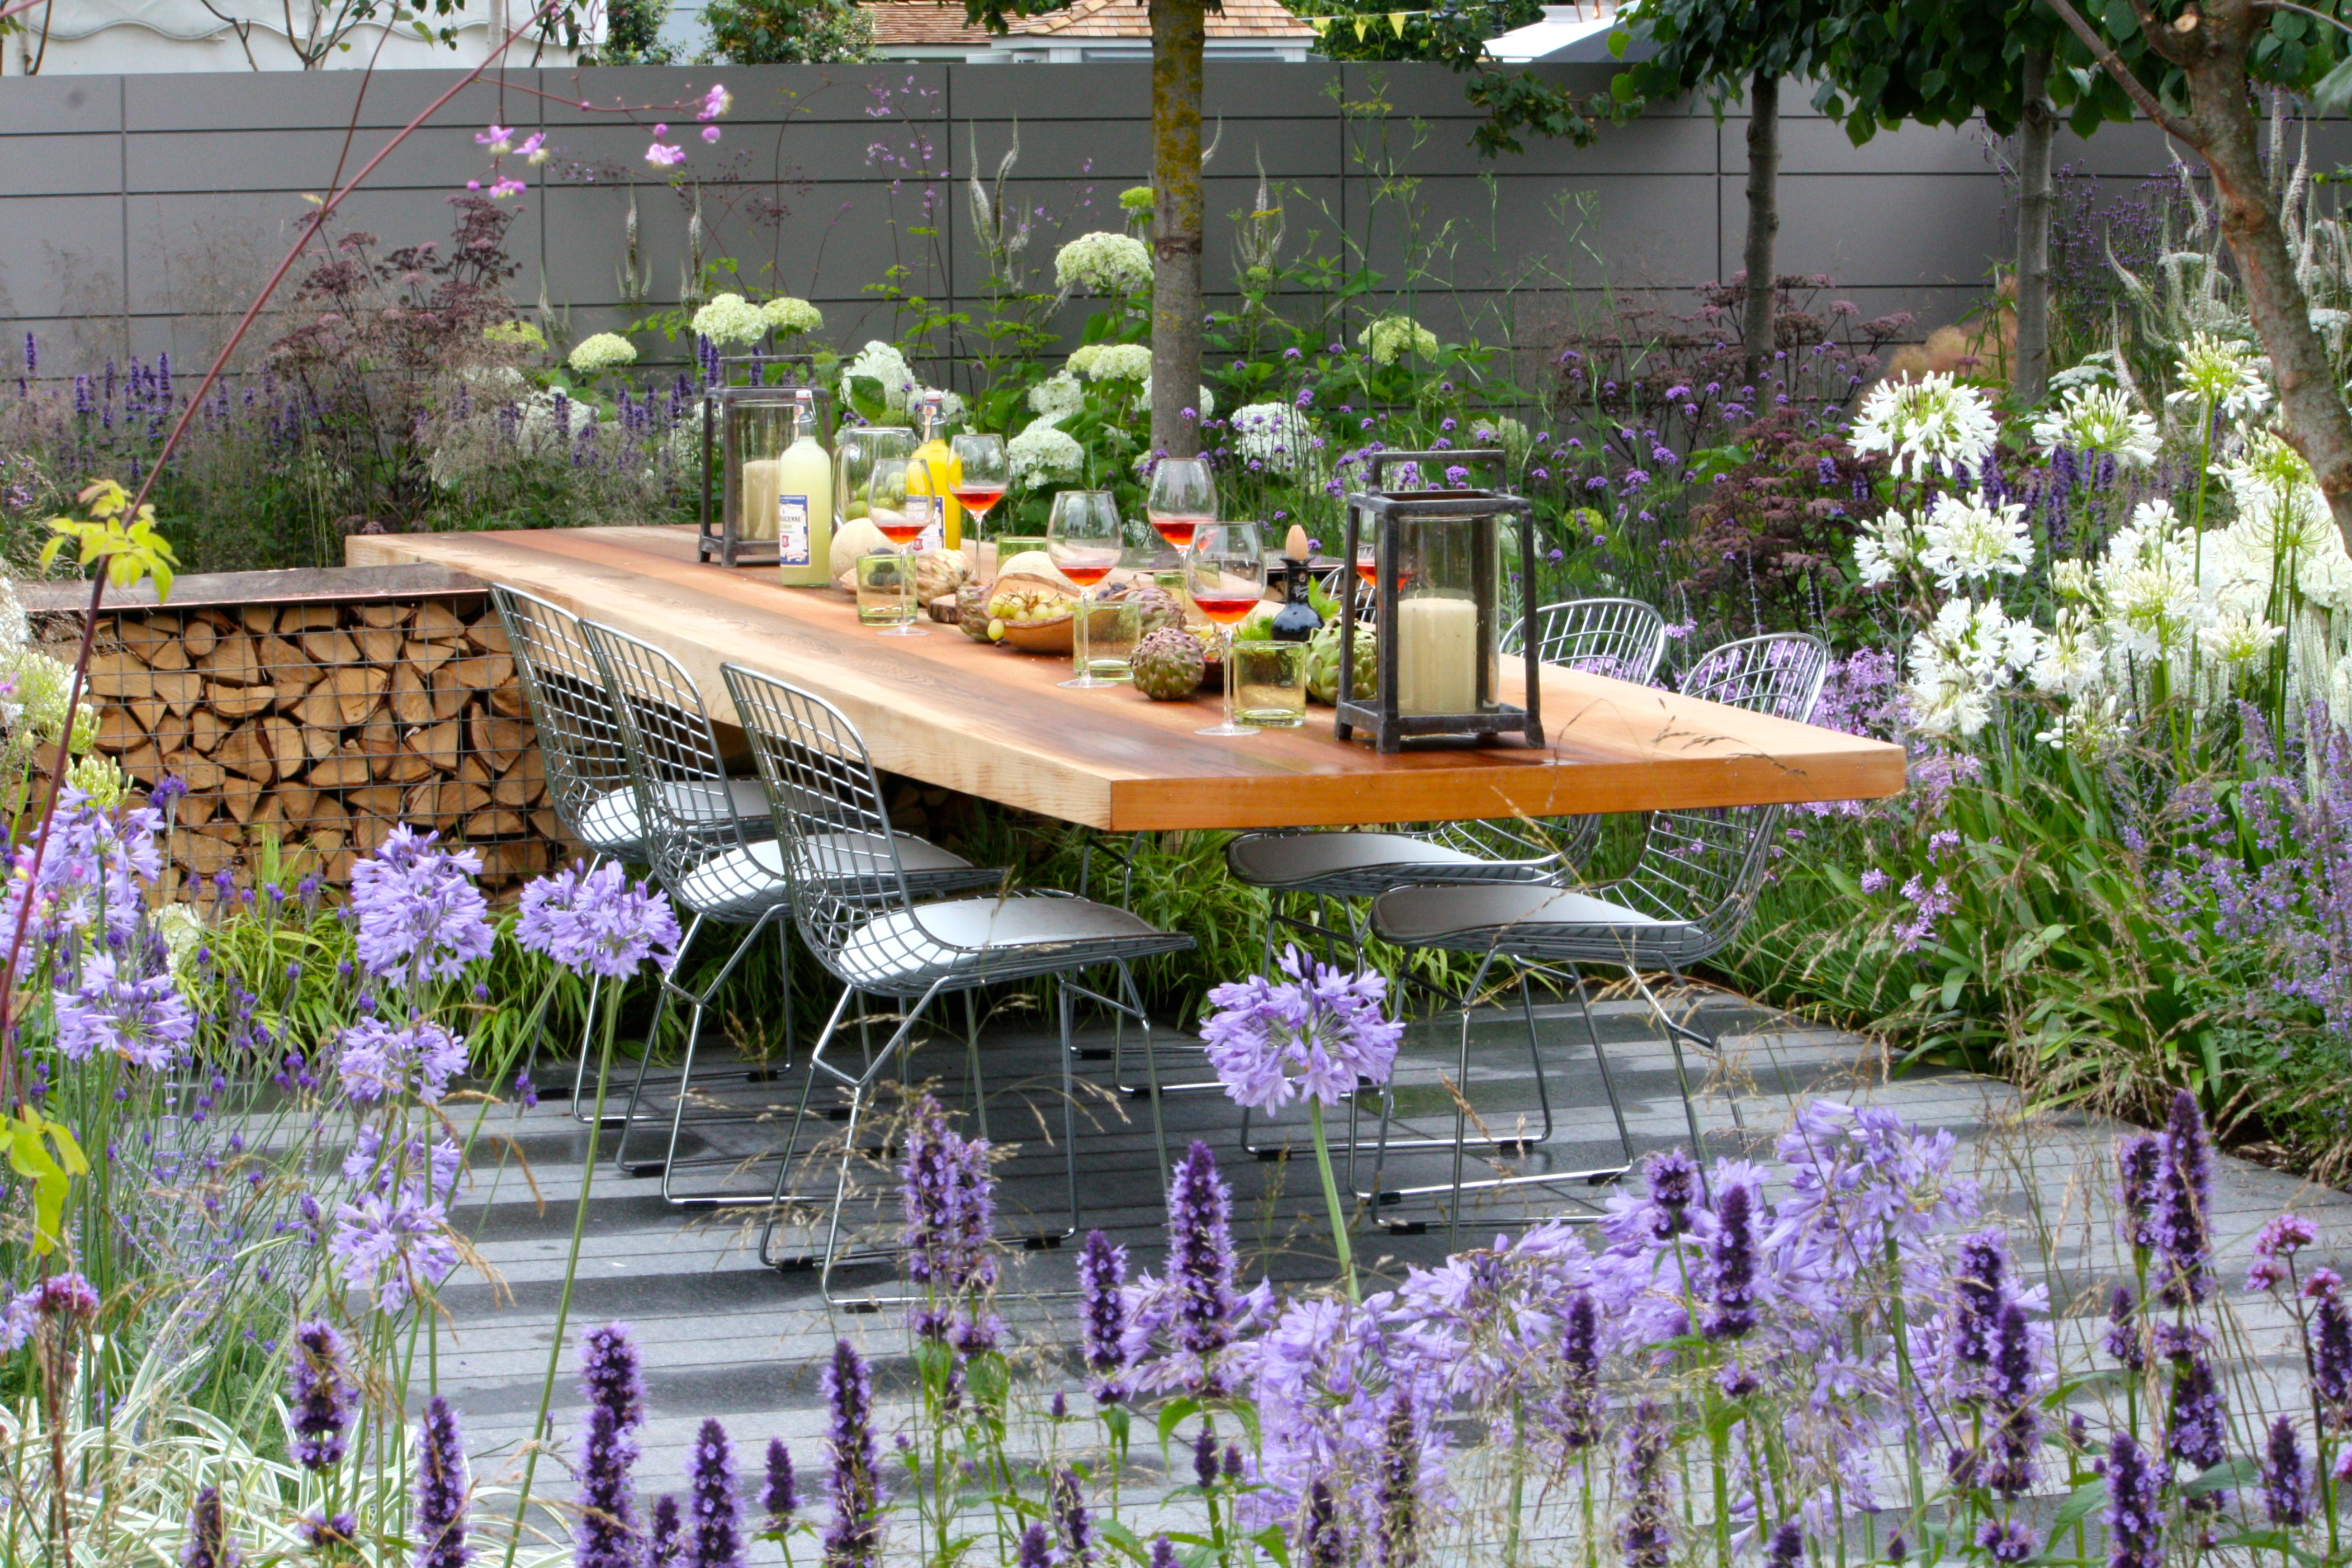 Rhs hampton court palace flower show 2014 show garden highlights the frustrated gardener - Hampton court flower show ...